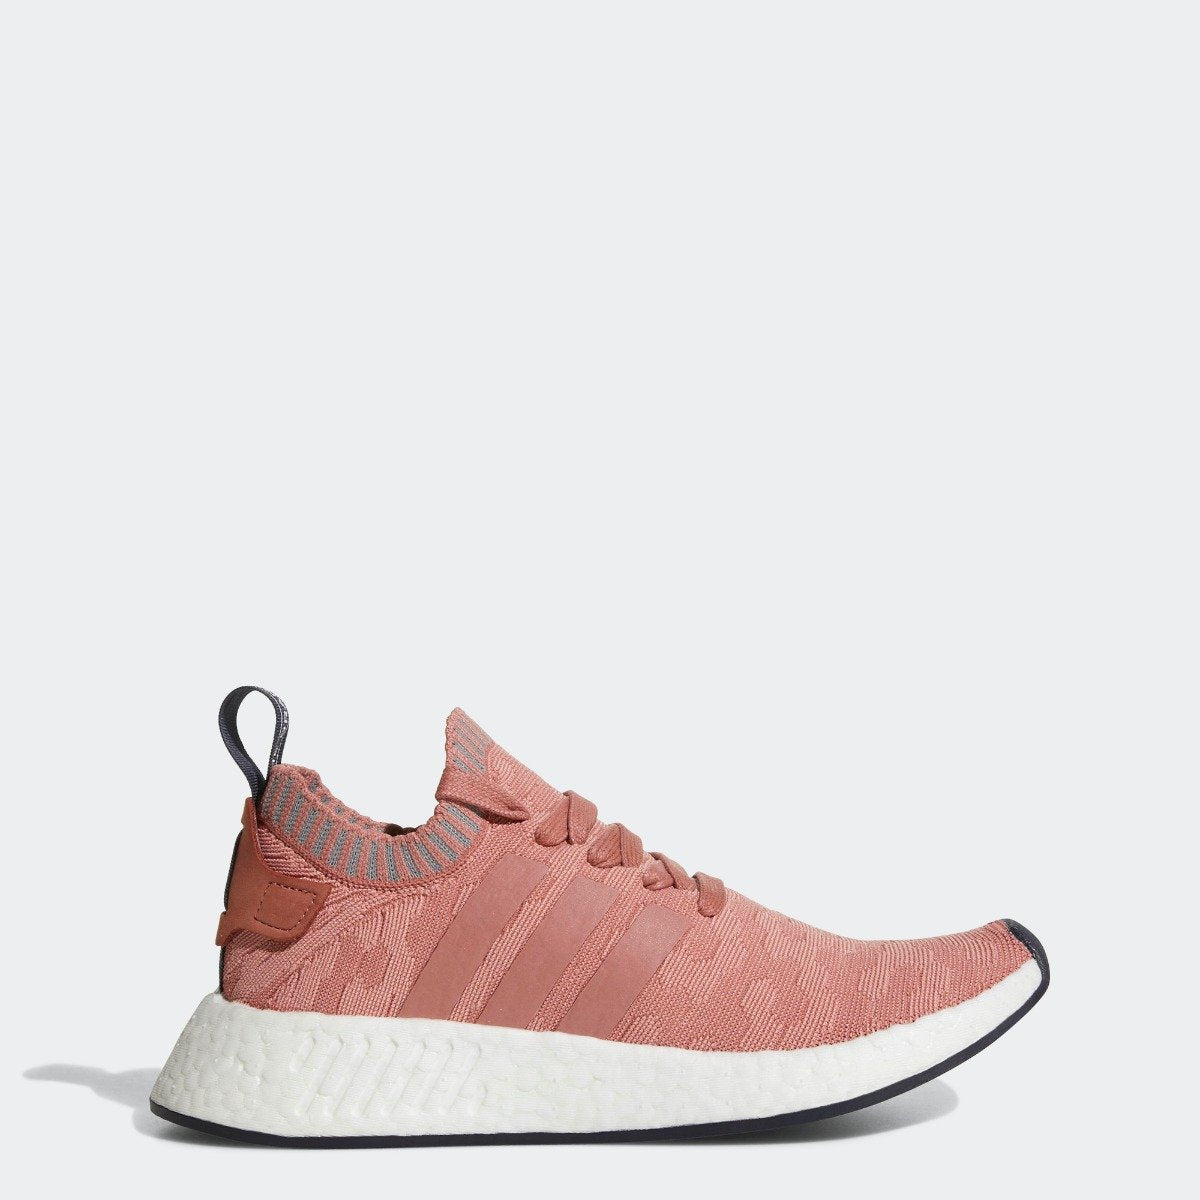 8c8e45134 Women s adidas Originals NMD R2 Primeknit Shoes Raw Pink BY8782 ...